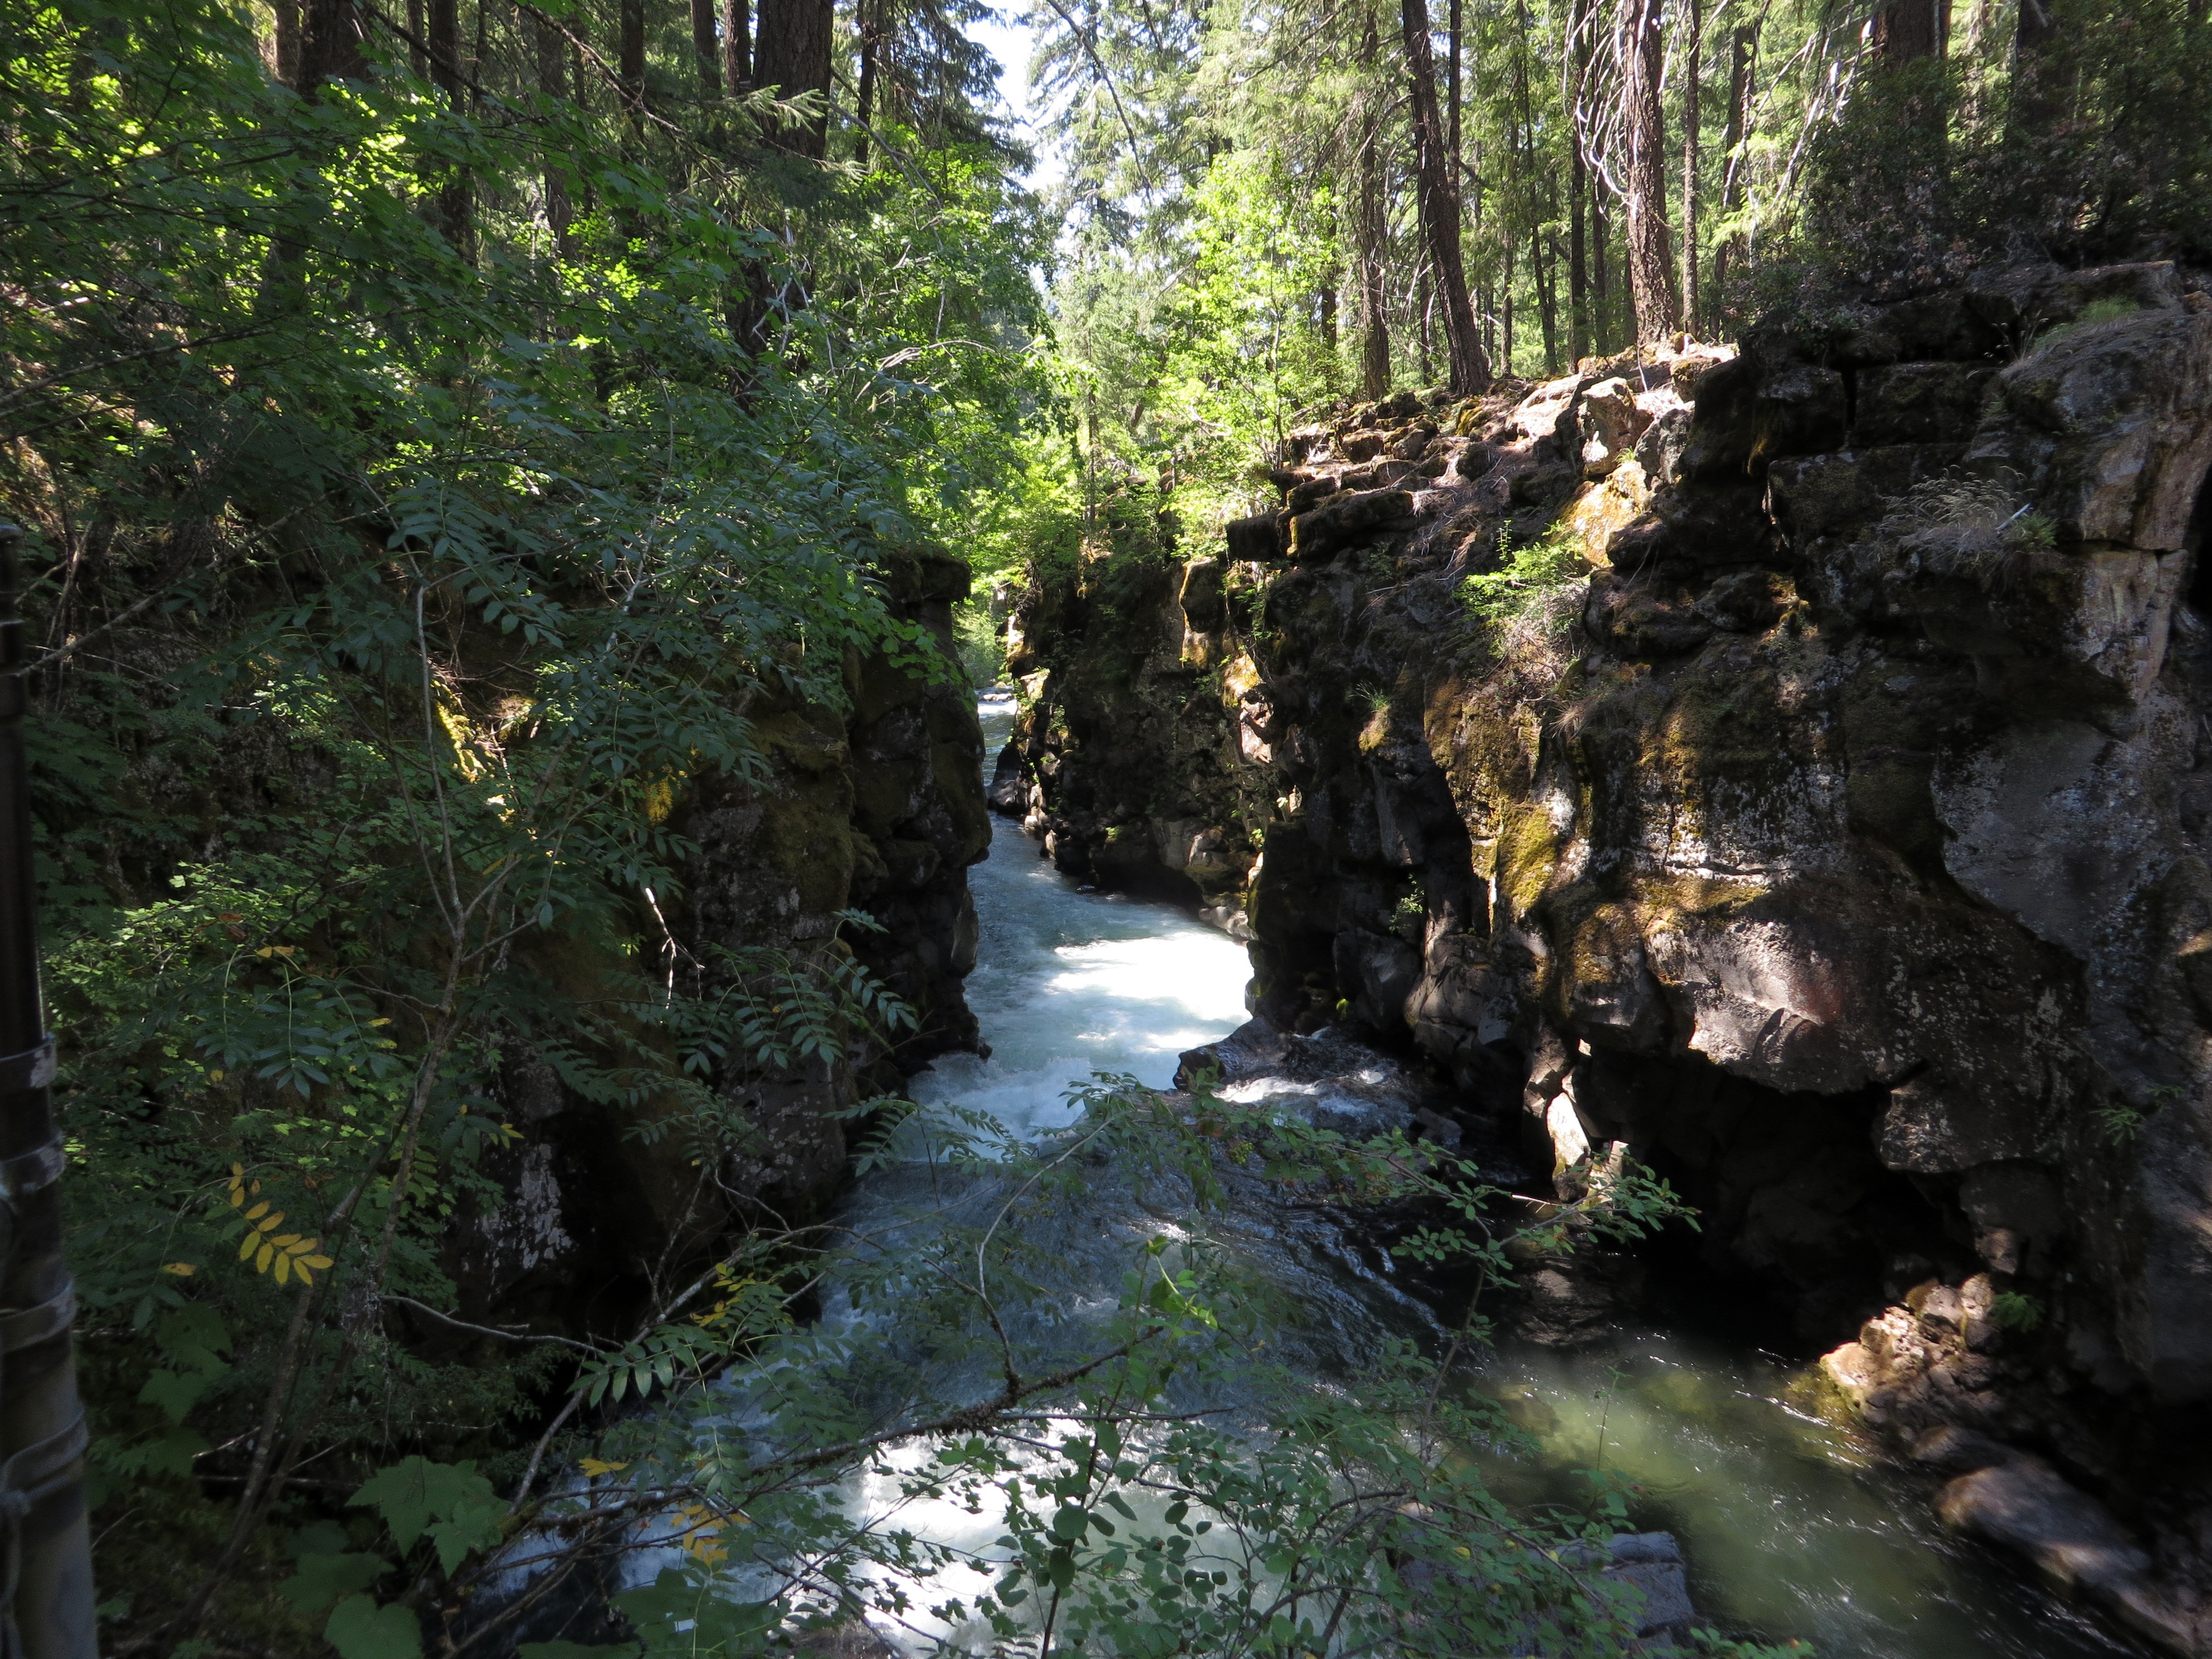 The lower stretch of the Rogue River Gorge. (photo by D. Speredelozzi)